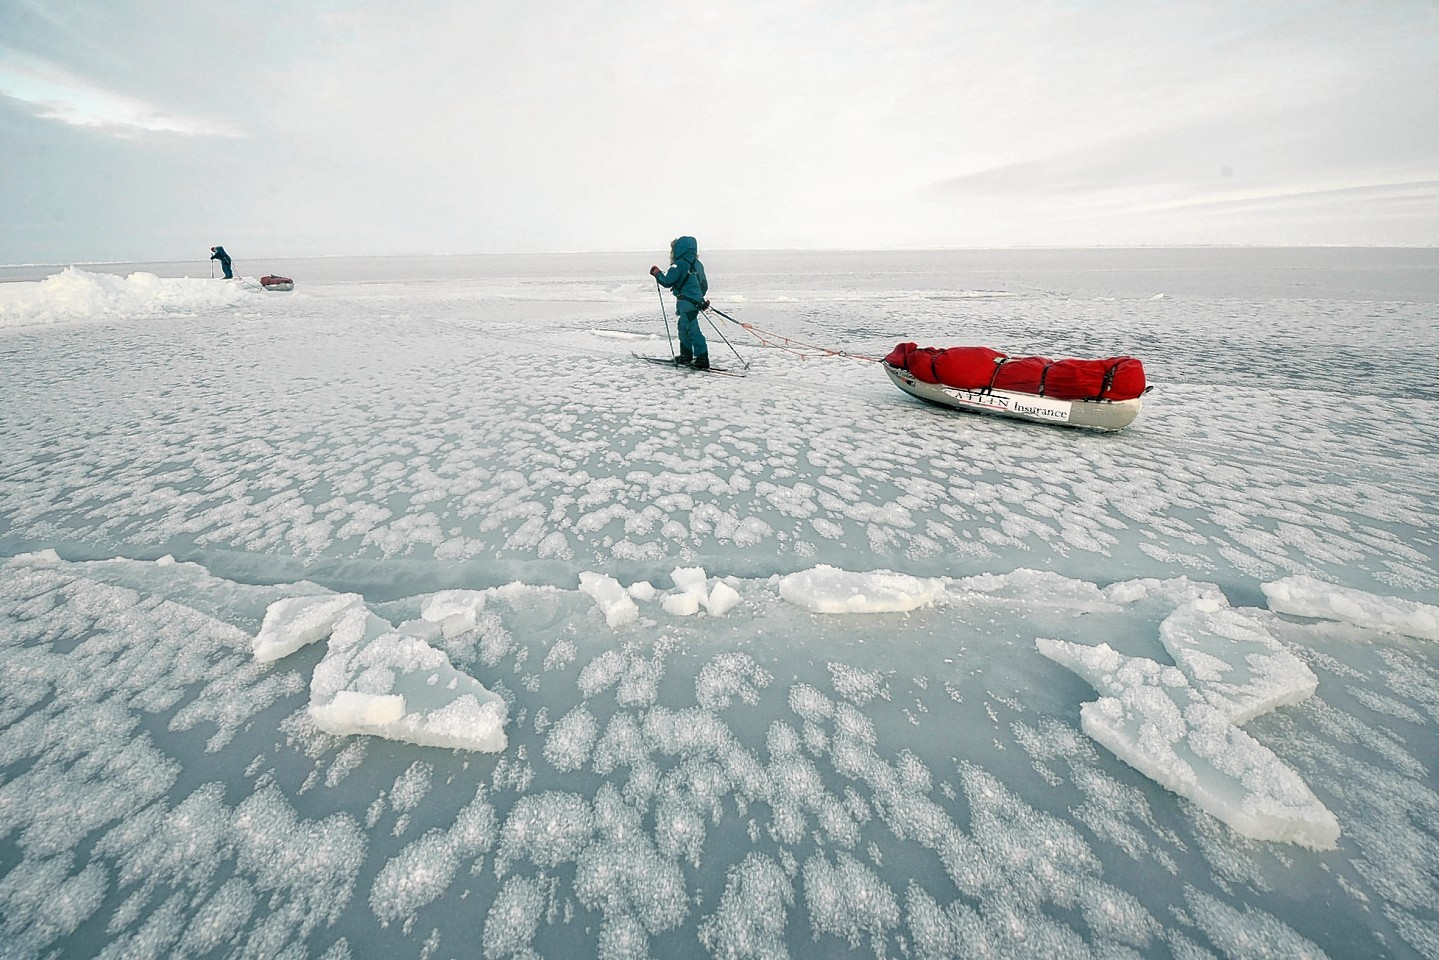 Charlie Paton and a team mate pulling sledge on thin ice in the North Pole.